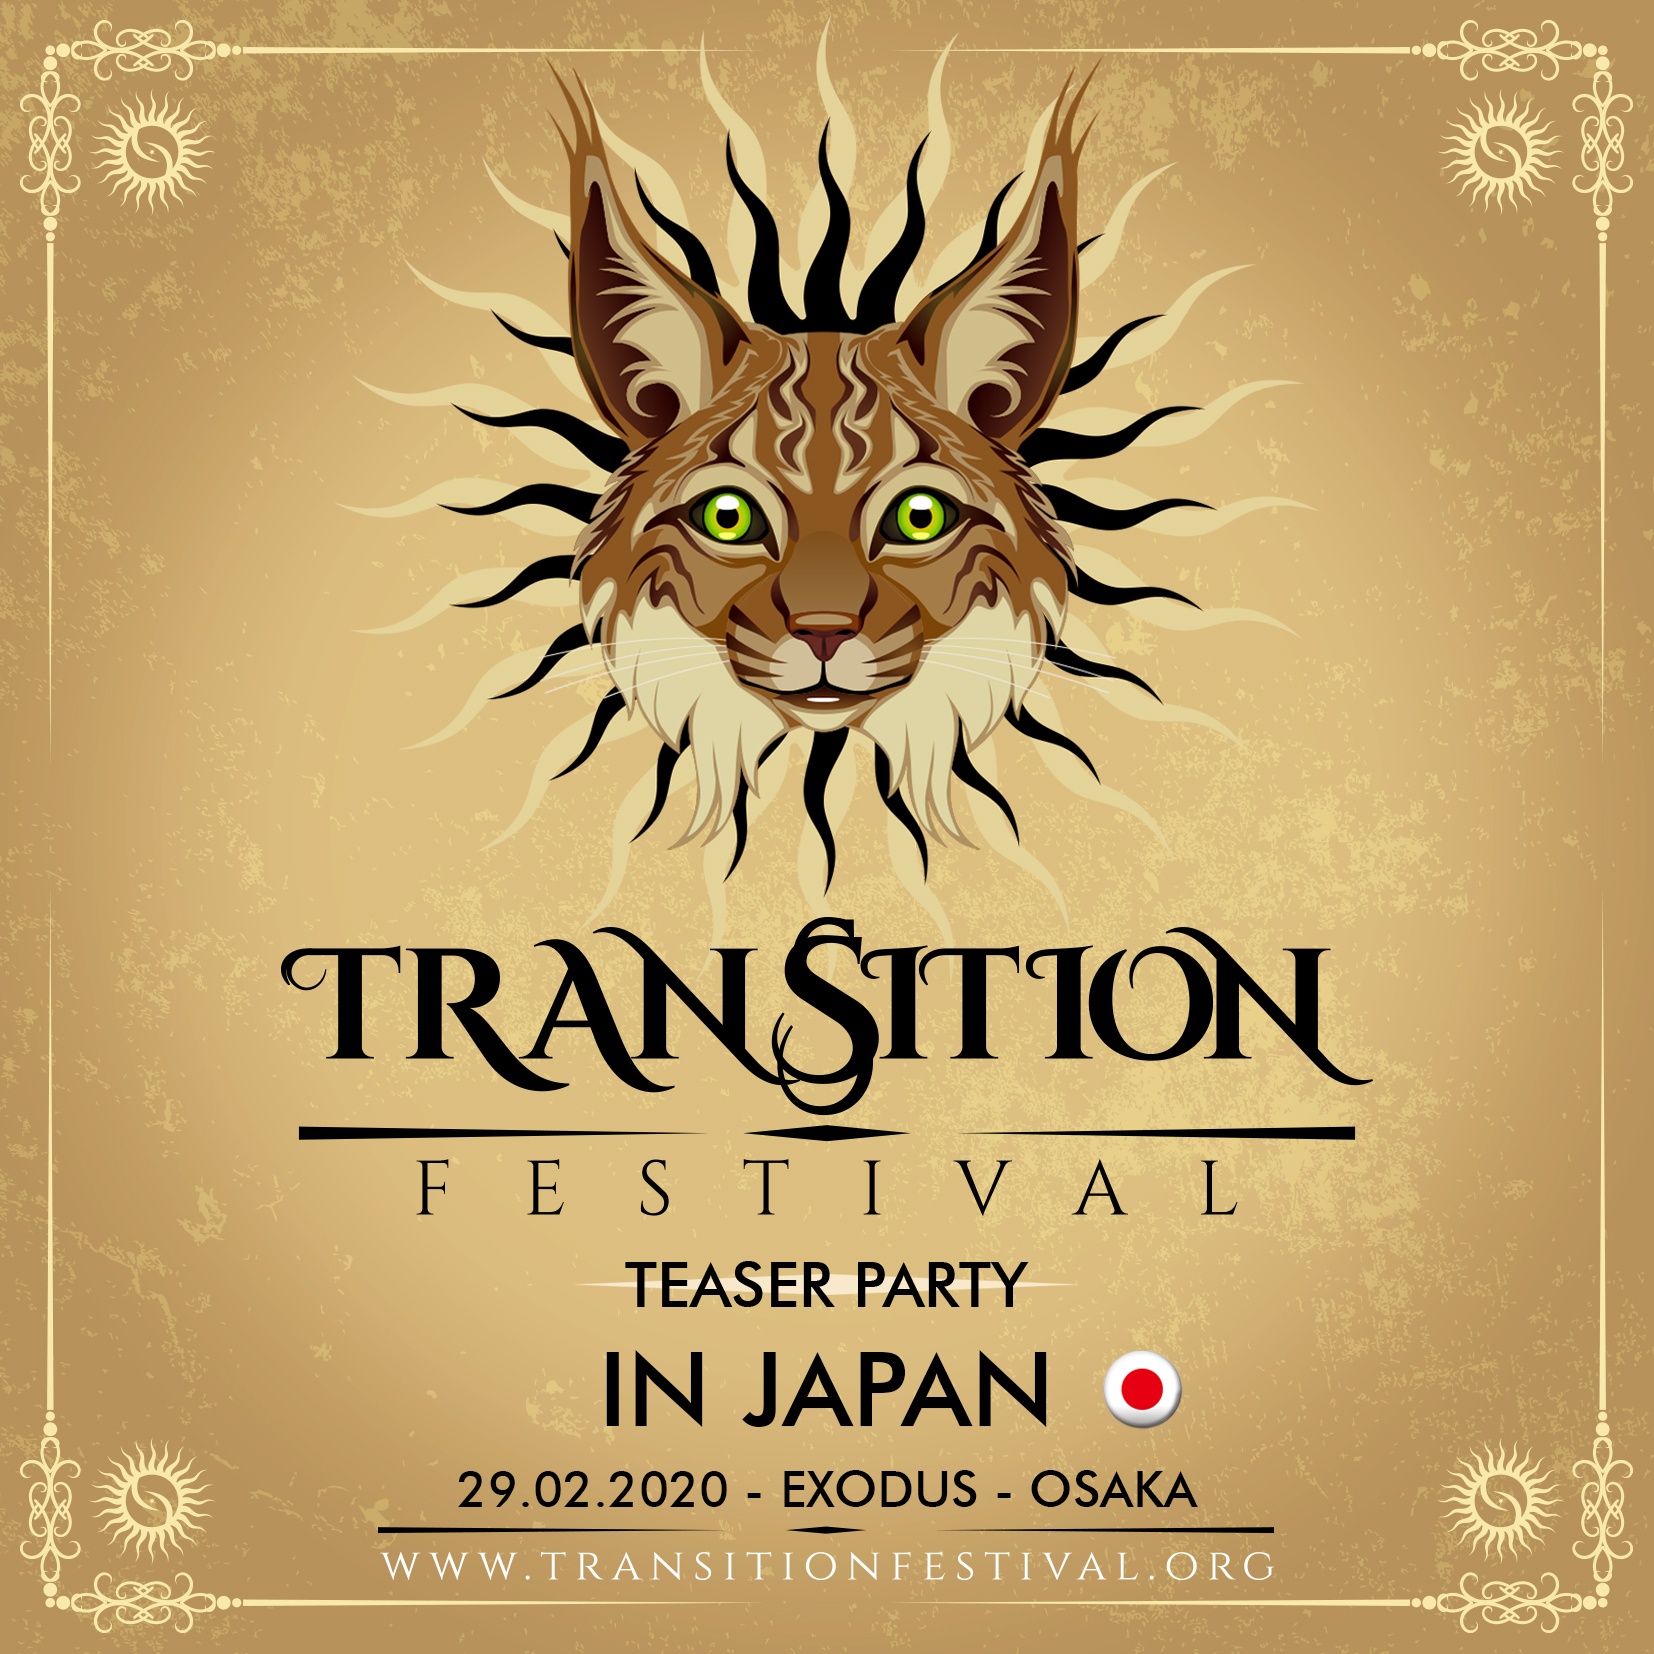 Transition Festival Teaser Party